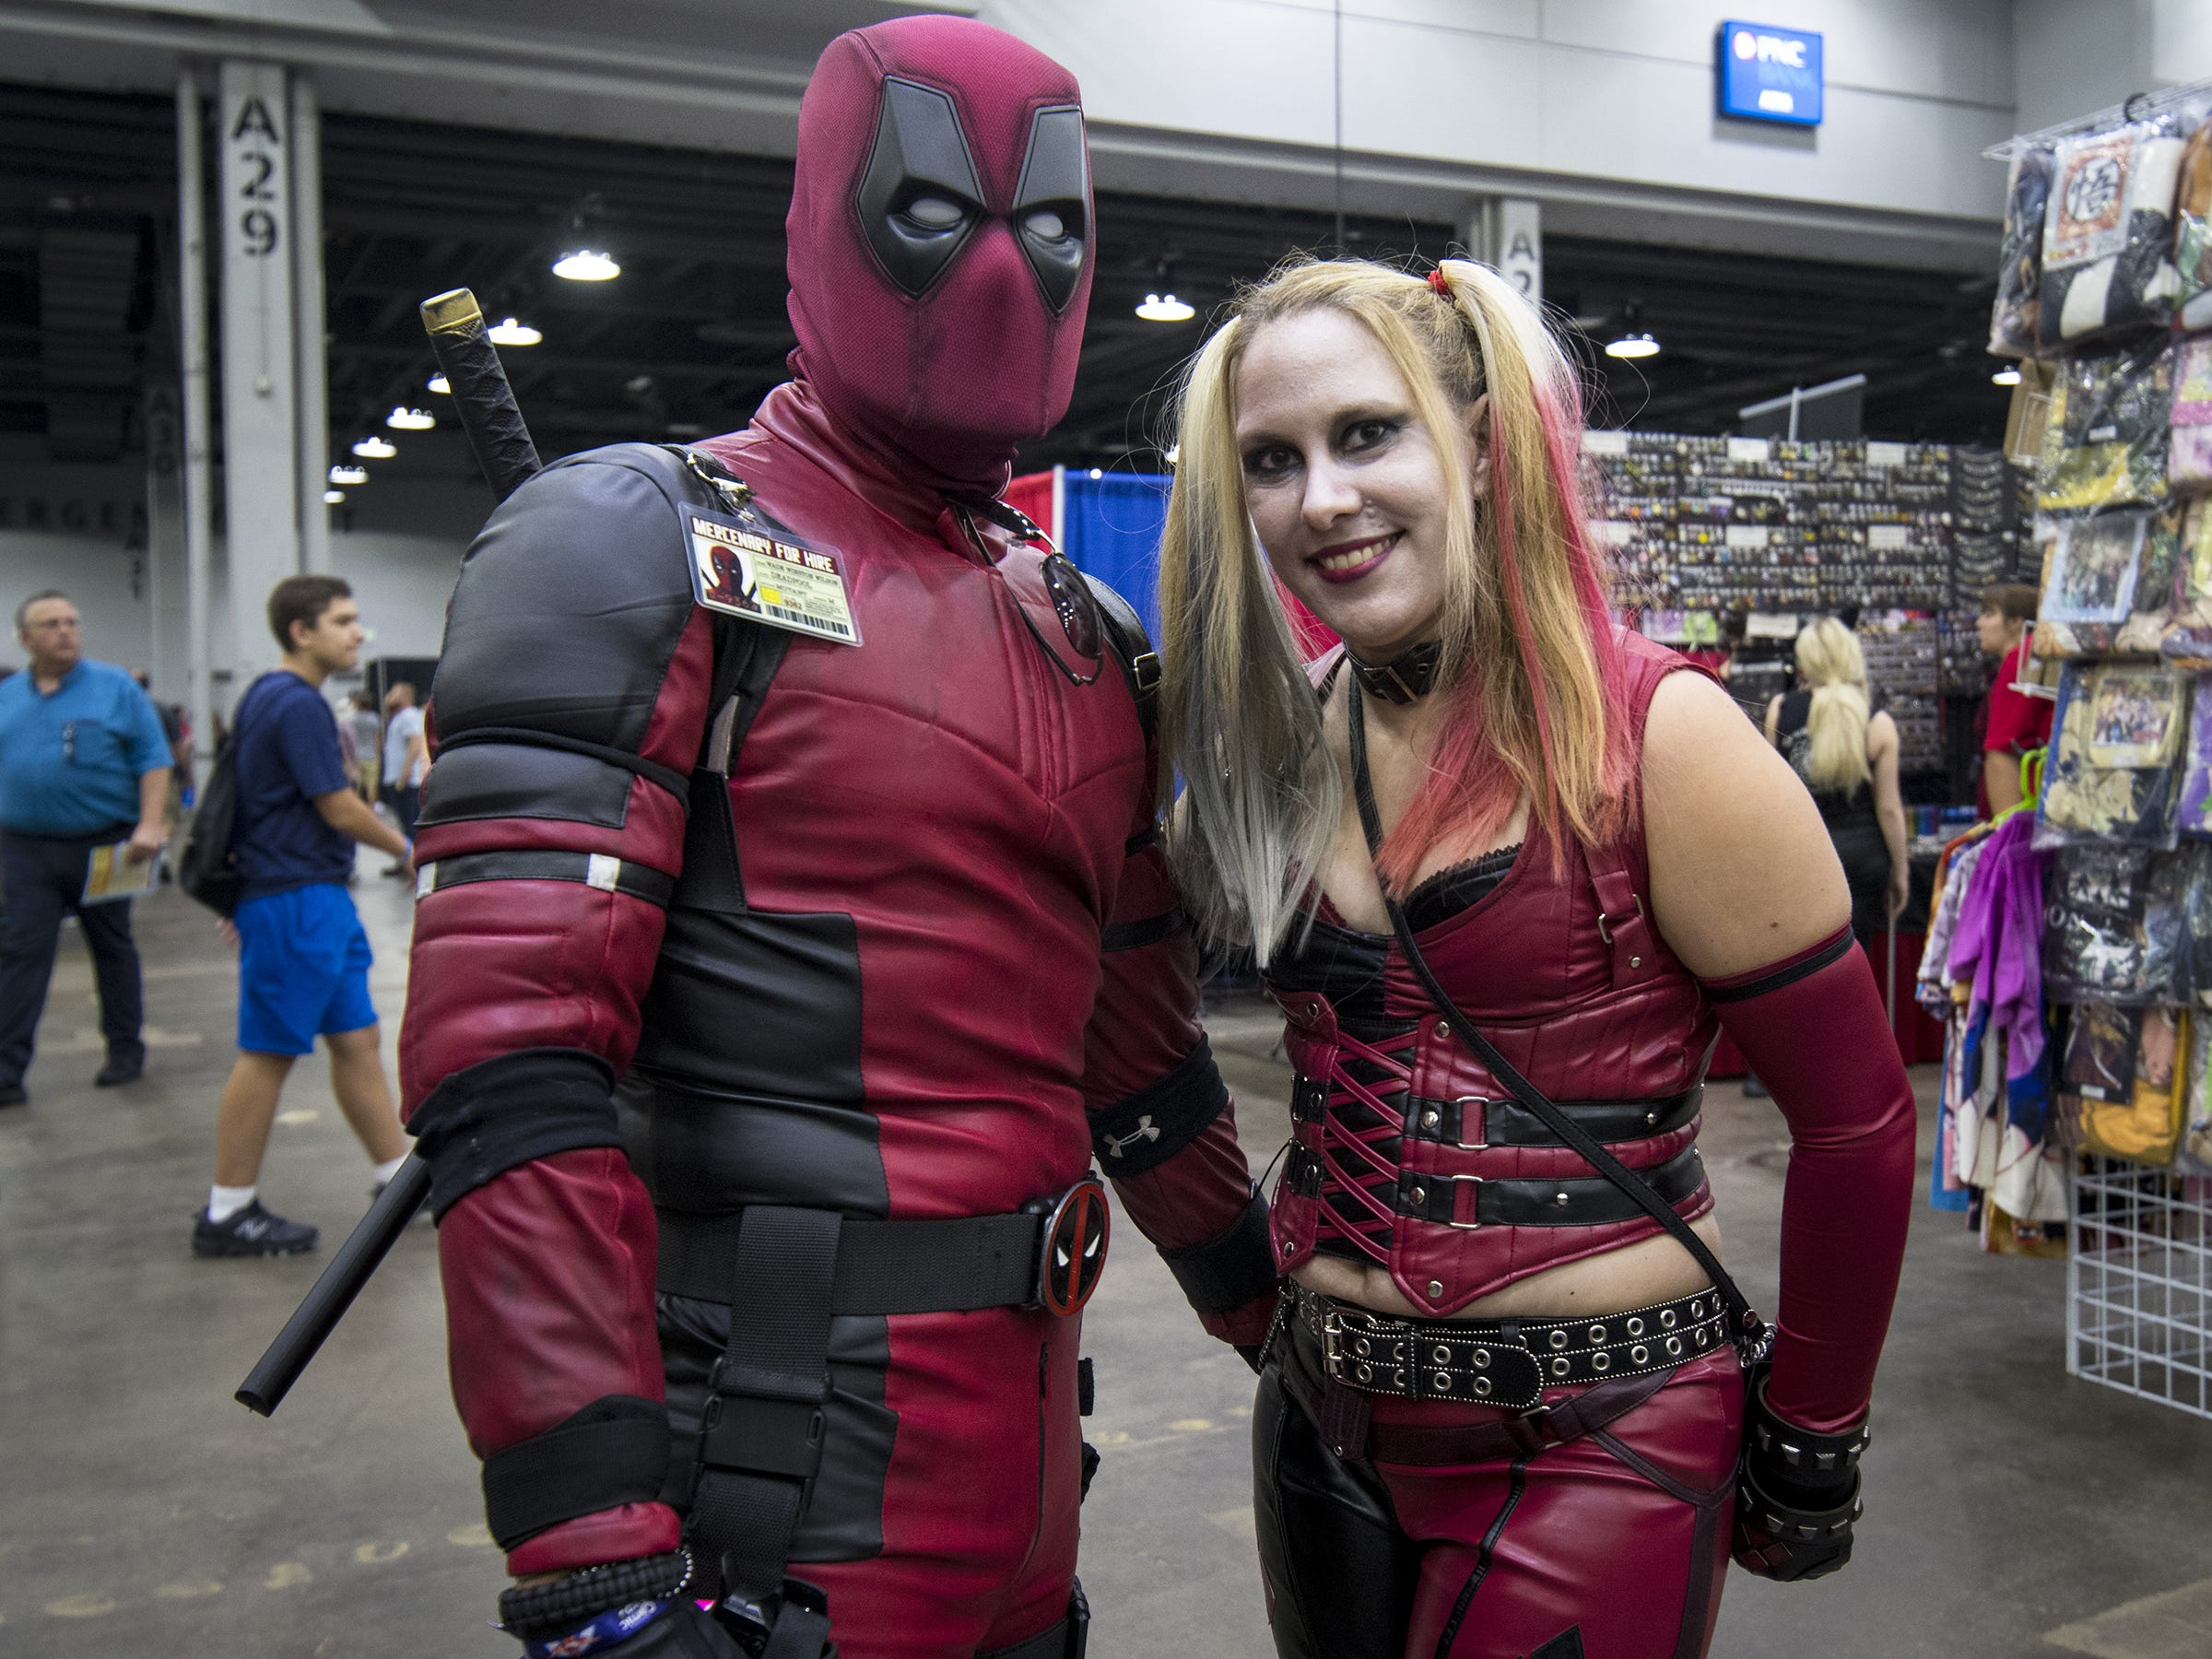 Tim Snyder and No'l Burton dress as Deadpool and Harley Quinn for the Cincinnati Comic Expo at the Duke Energy Center on Friday, Sept. 14, 2018 in Cincinnati, Ohio. The expo will run through Sunday, Sept. 16.